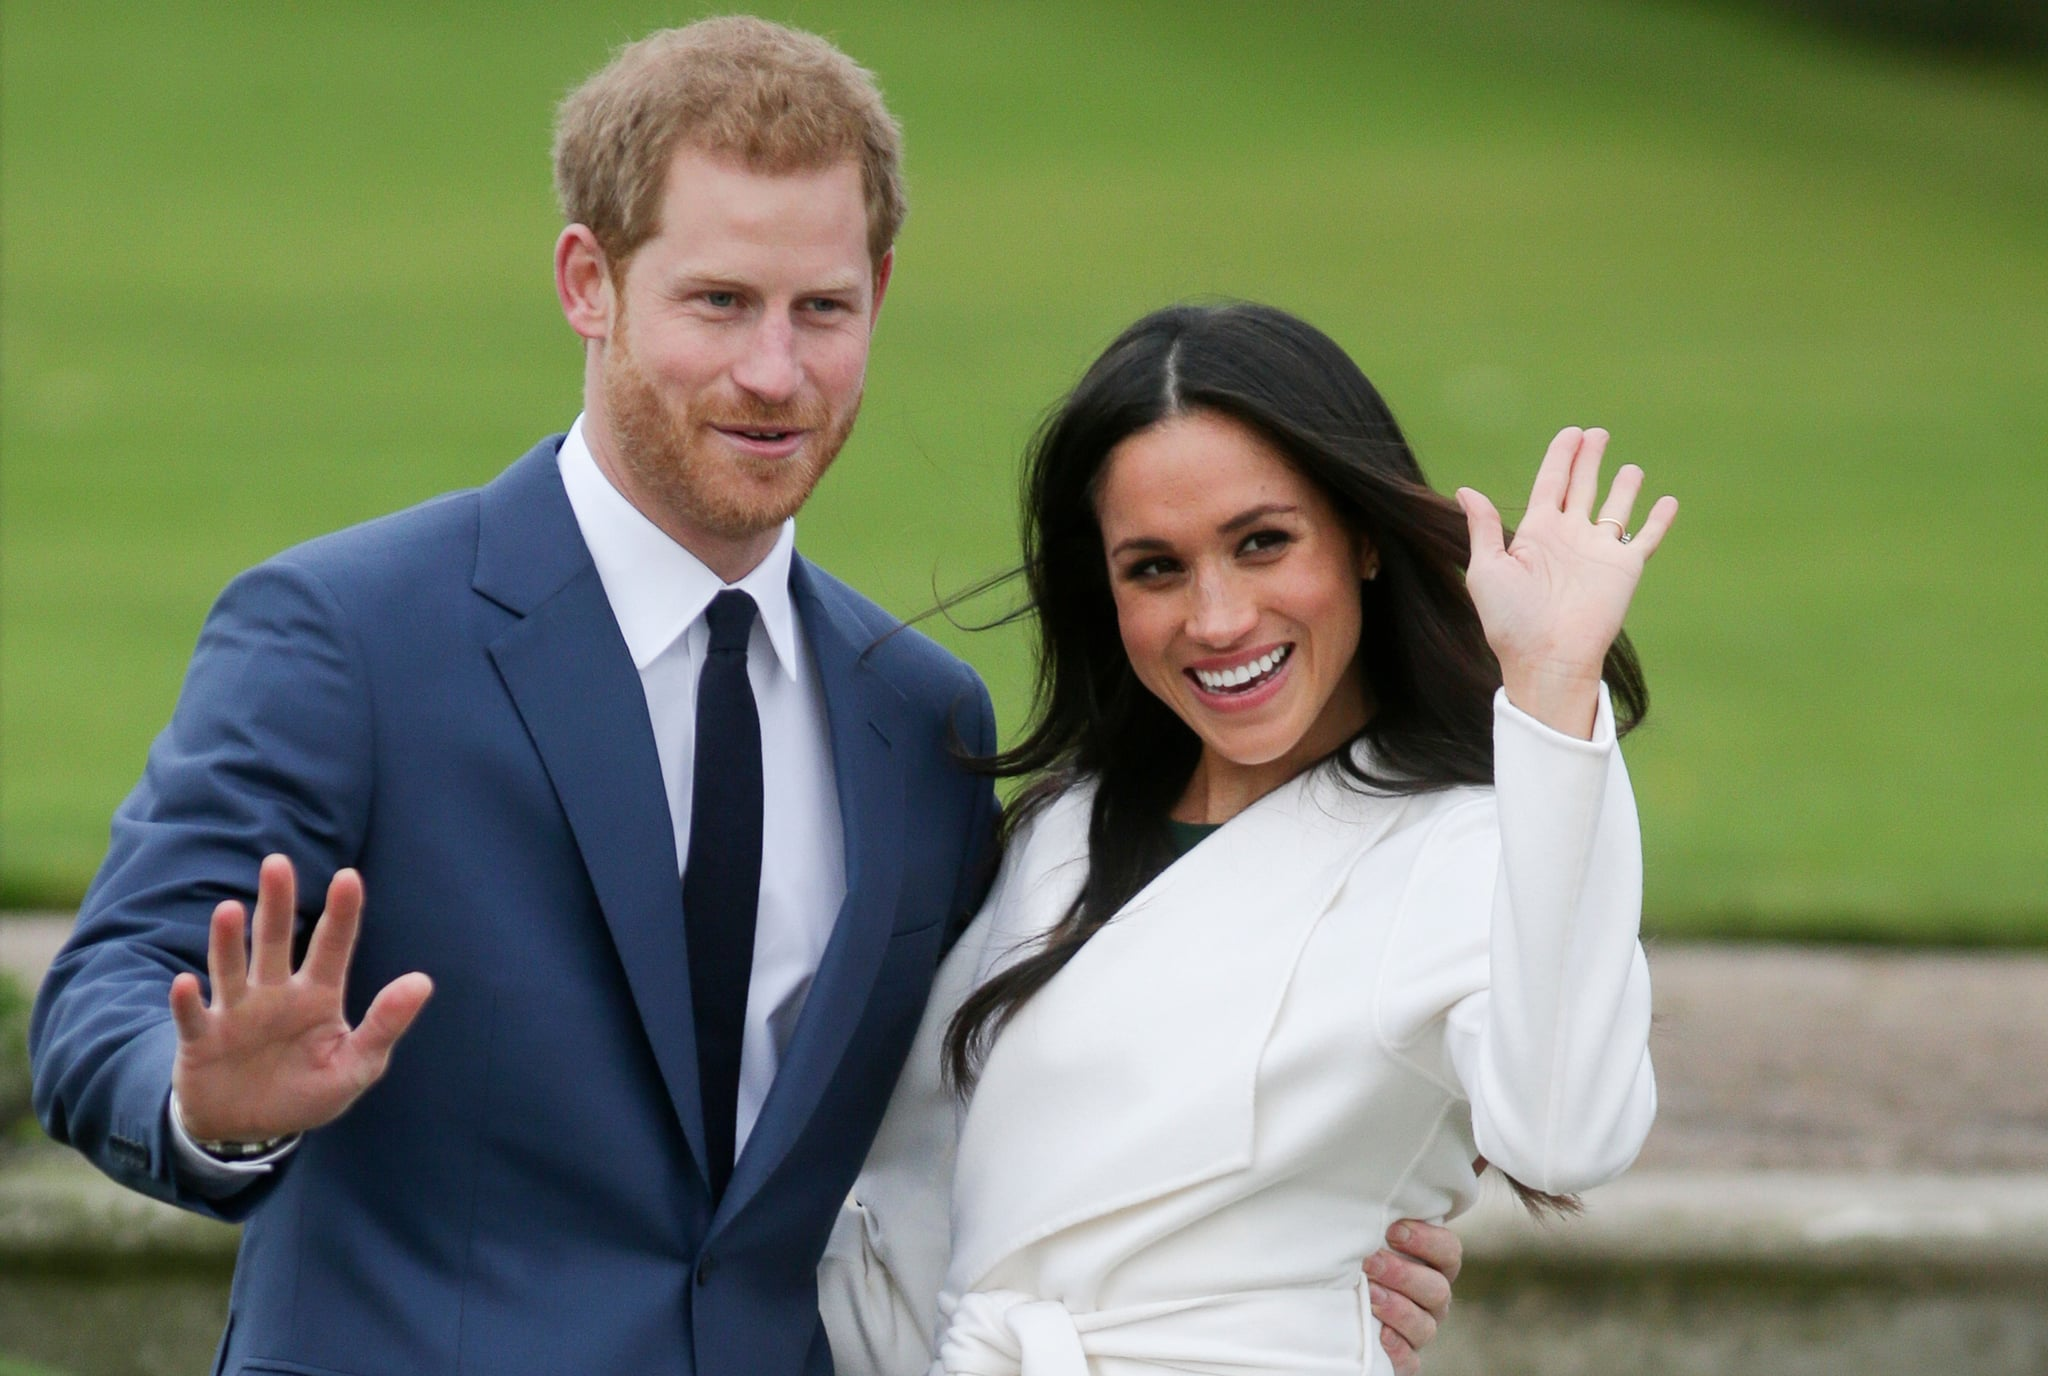 Britain's Prince Harry and his fiancée US actress Meghan Markle pose for a photograph in the Sunken Garden at Kensington Palace in west London on November 27, 2017, following the announcement of their engagement.Britain's Prince Harry will marry his US actress girlfriend Meghan Markle early next year after the couple became engaged earlier this month, Clarence House announced on Monday. / AFP PHOTO / Daniel LEAL-OLIVAS        (Photo credit should read DANIEL LEAL-OLIVAS/AFP/Getty Images)